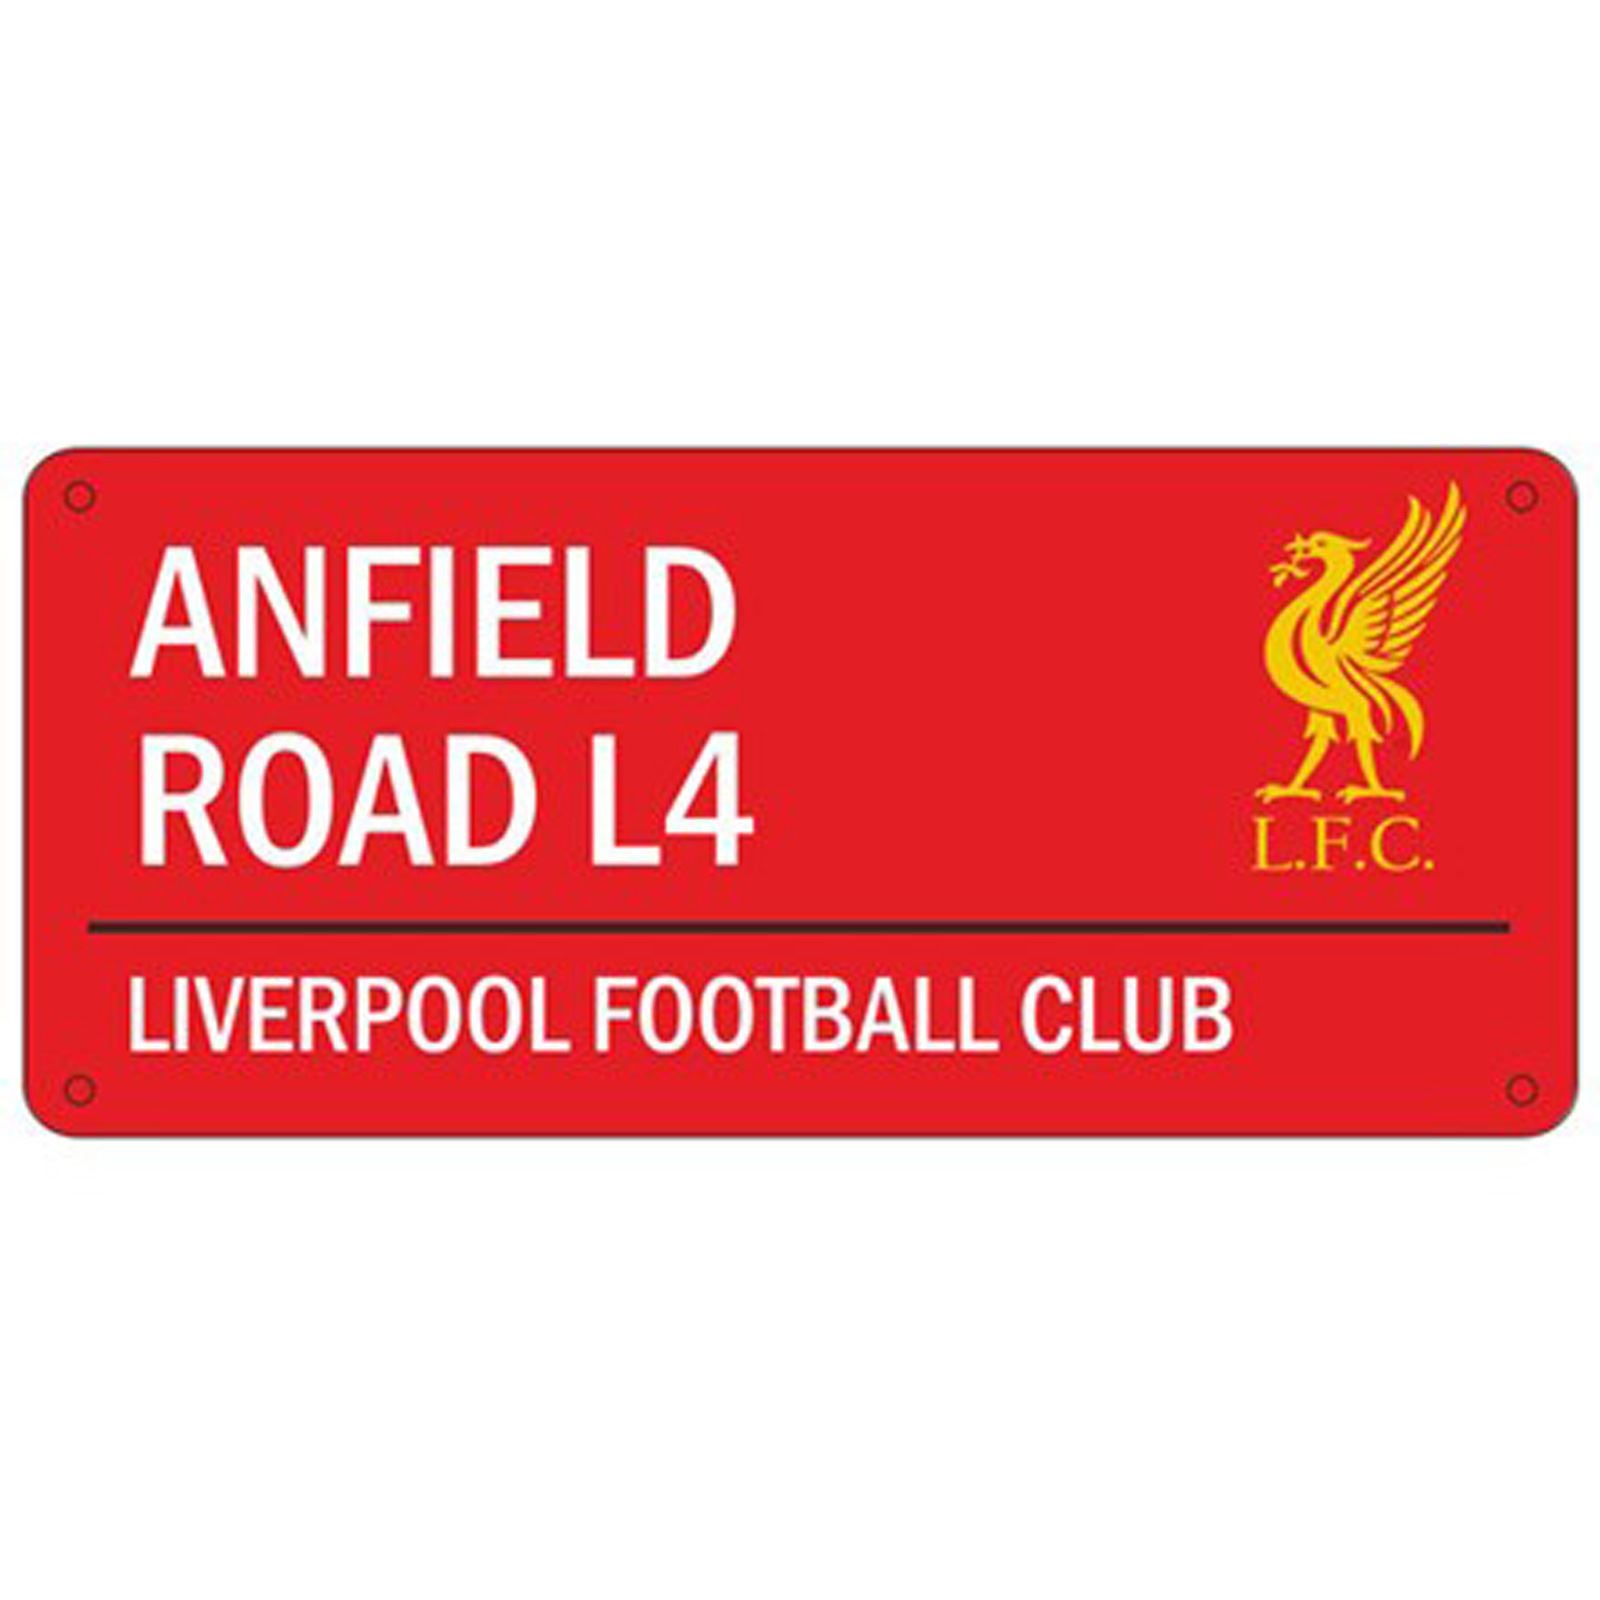 Light Shop Liverpool Road Ainsdale: OFFICIAL FOOTBALL CLUB STREET ROAD SIGNS